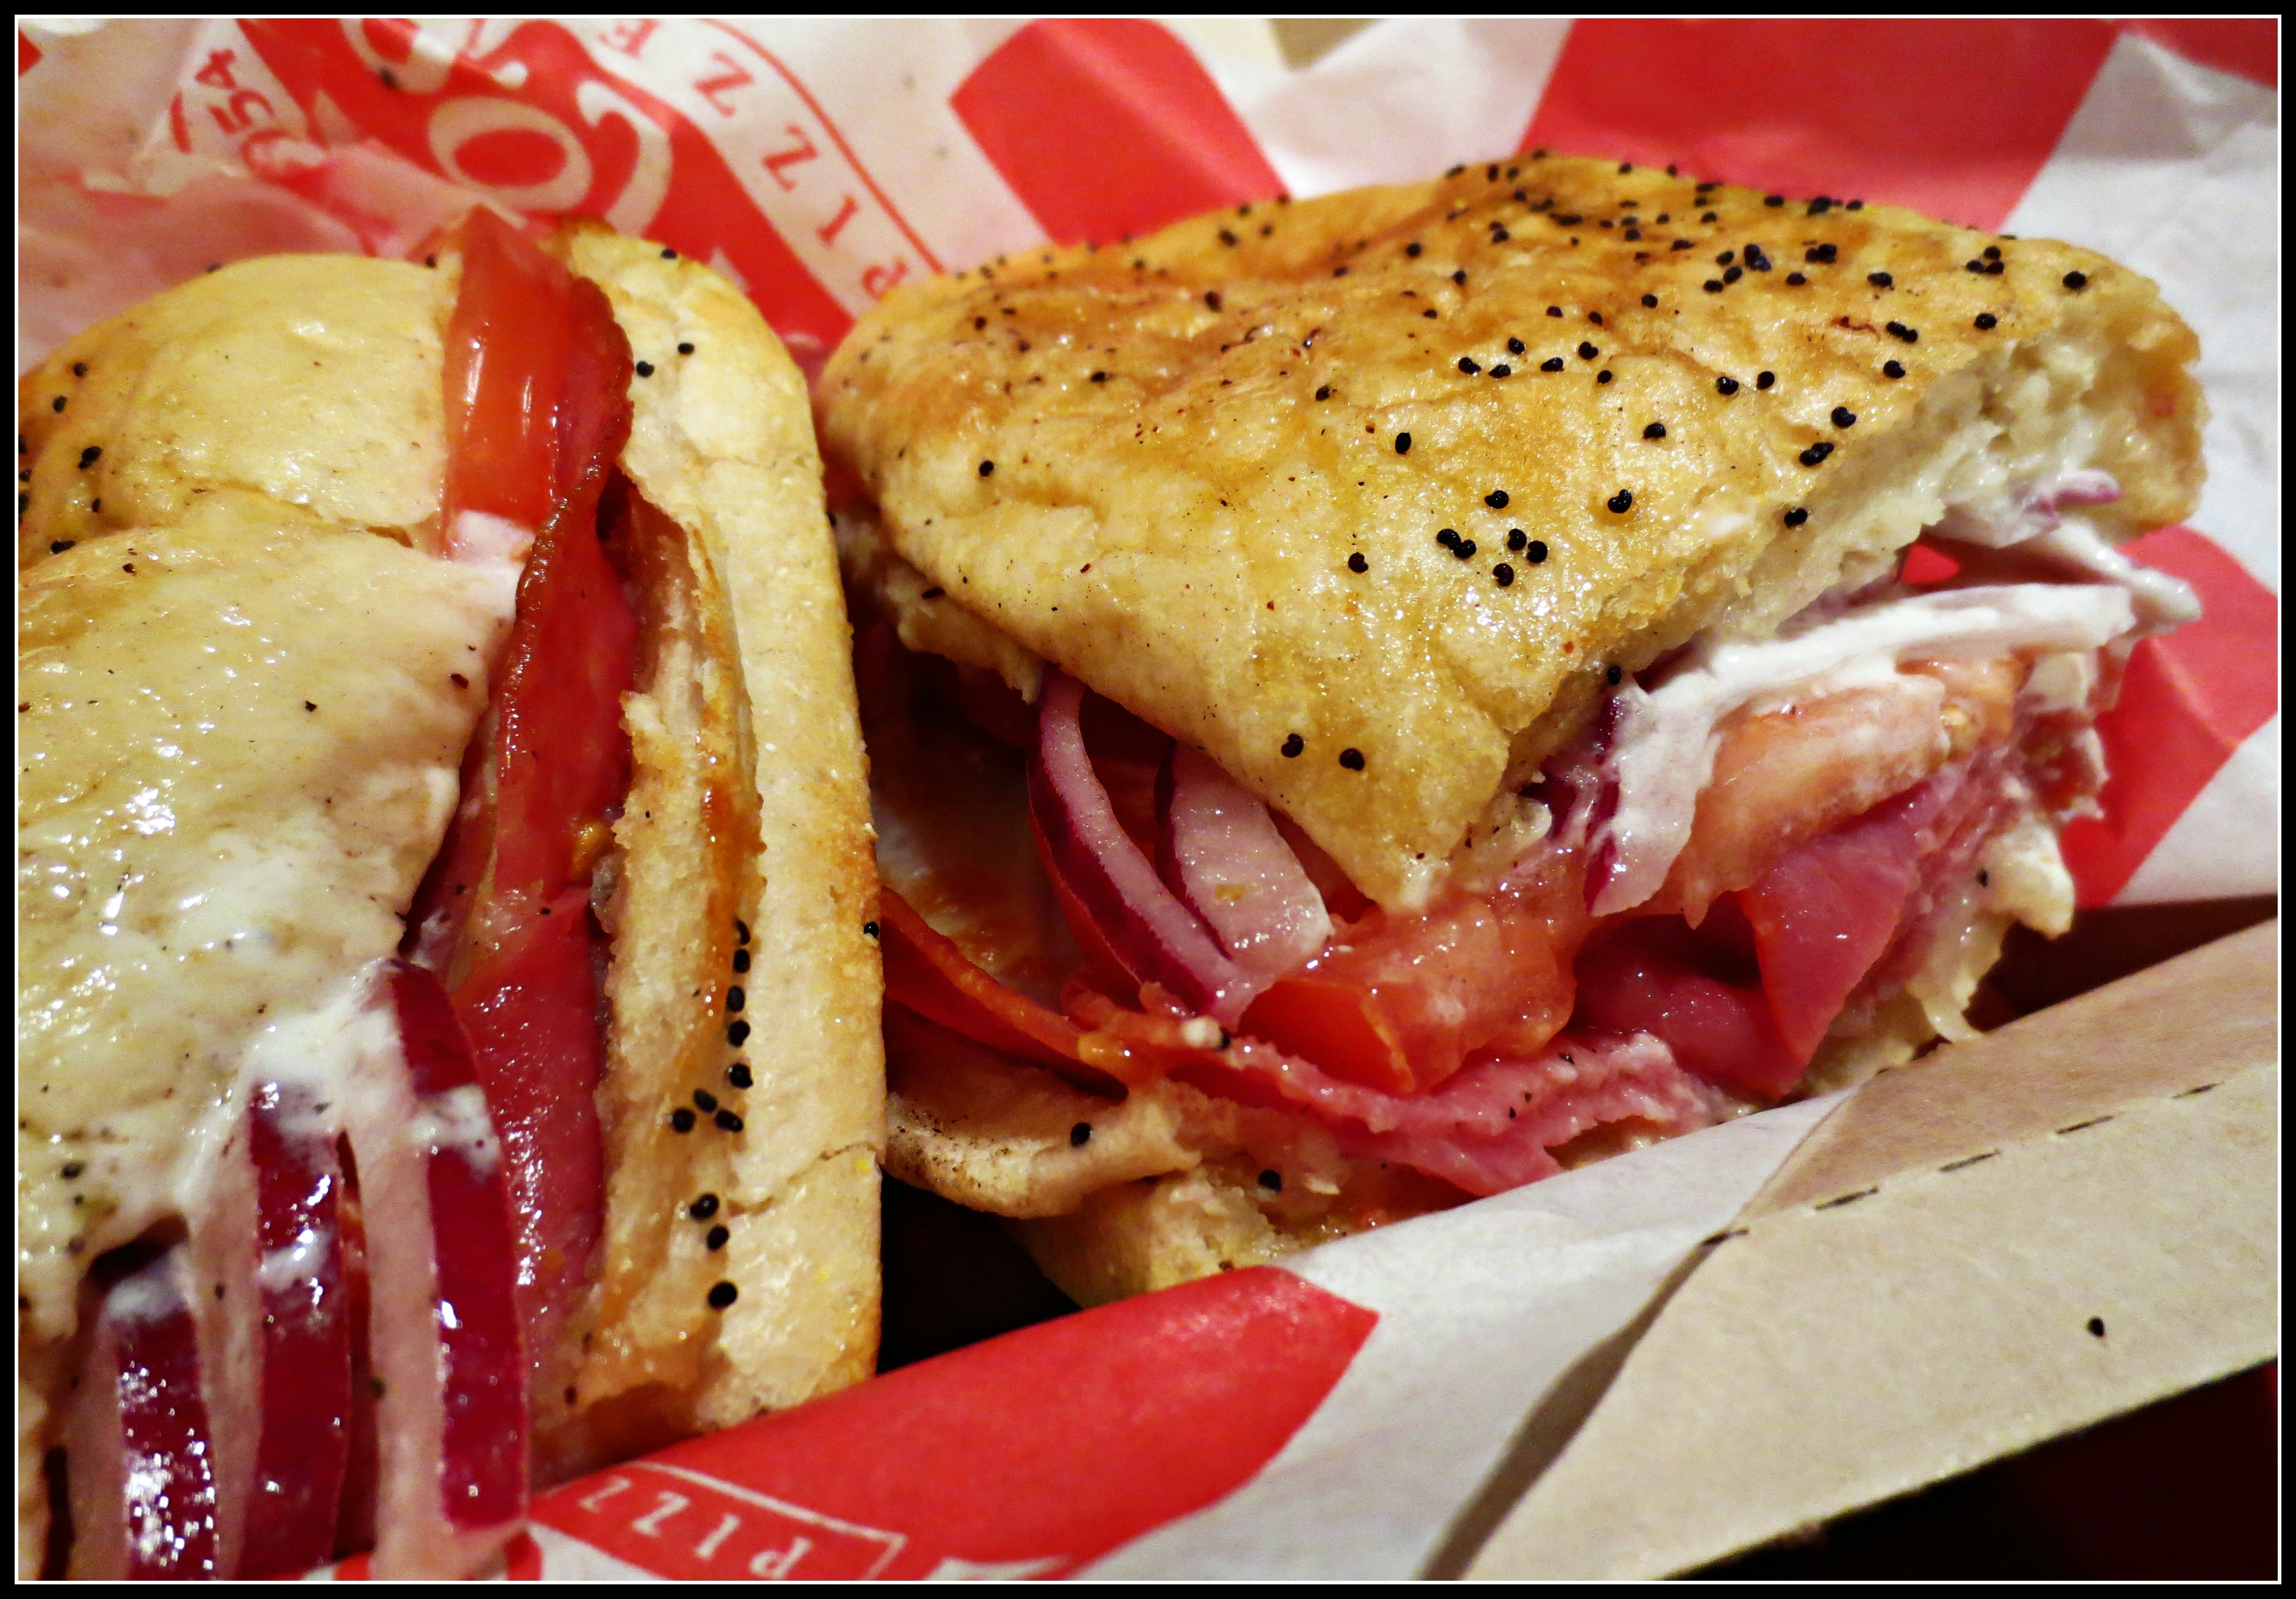 Cheery Hoagie Week Foodie Girl Goes Ravenous Princess Home Hoagy S Hoagy On Stony Island Home curbed Home Of The Hoagy